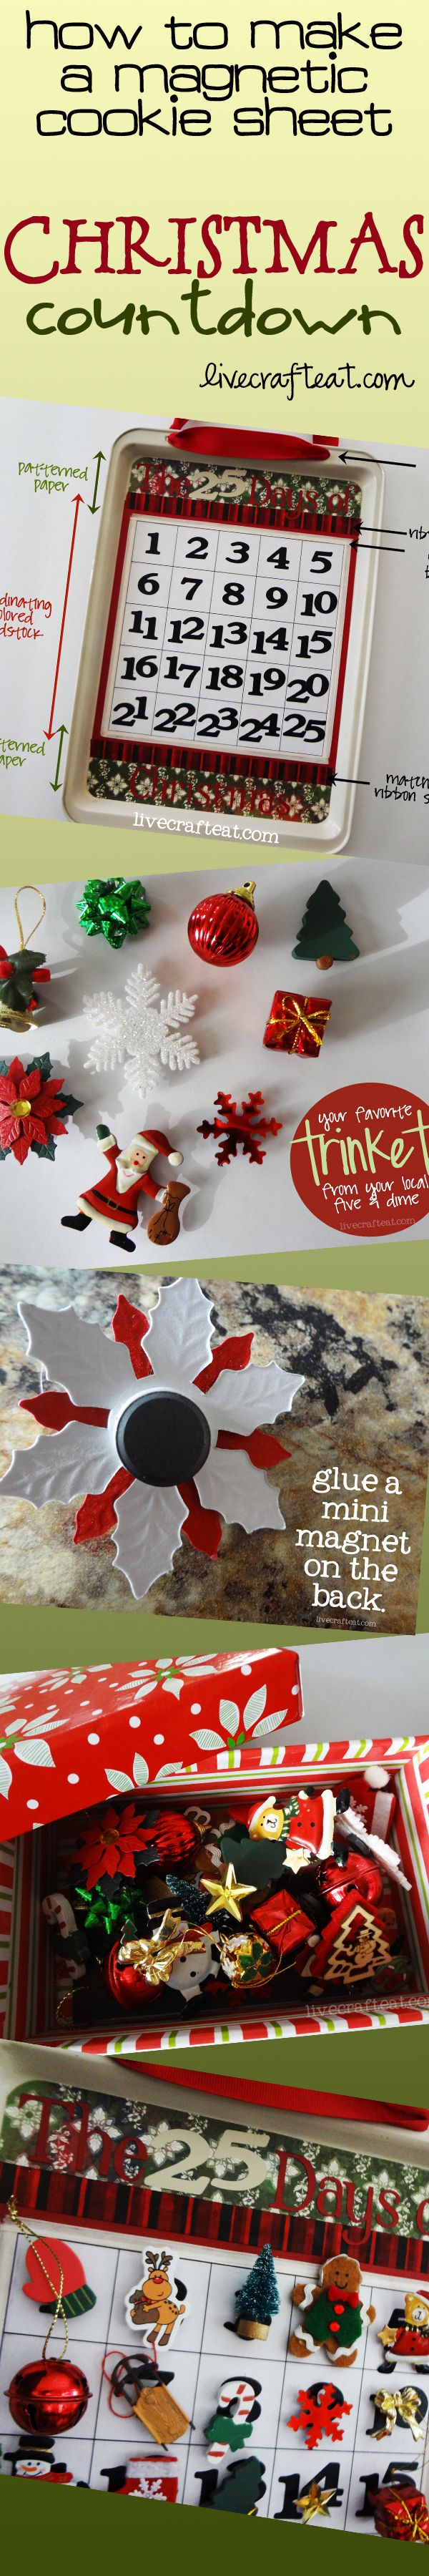 how to make a magnetic cookie sheet christmas countdown - looks great as a christmas decoration in your home and it's also great for kids! make it as cutesy or as sophisticated as you want. (just don't tell anyone that it's way inexpensive...they'll never be able to tell!)   www.livecrafteat.com